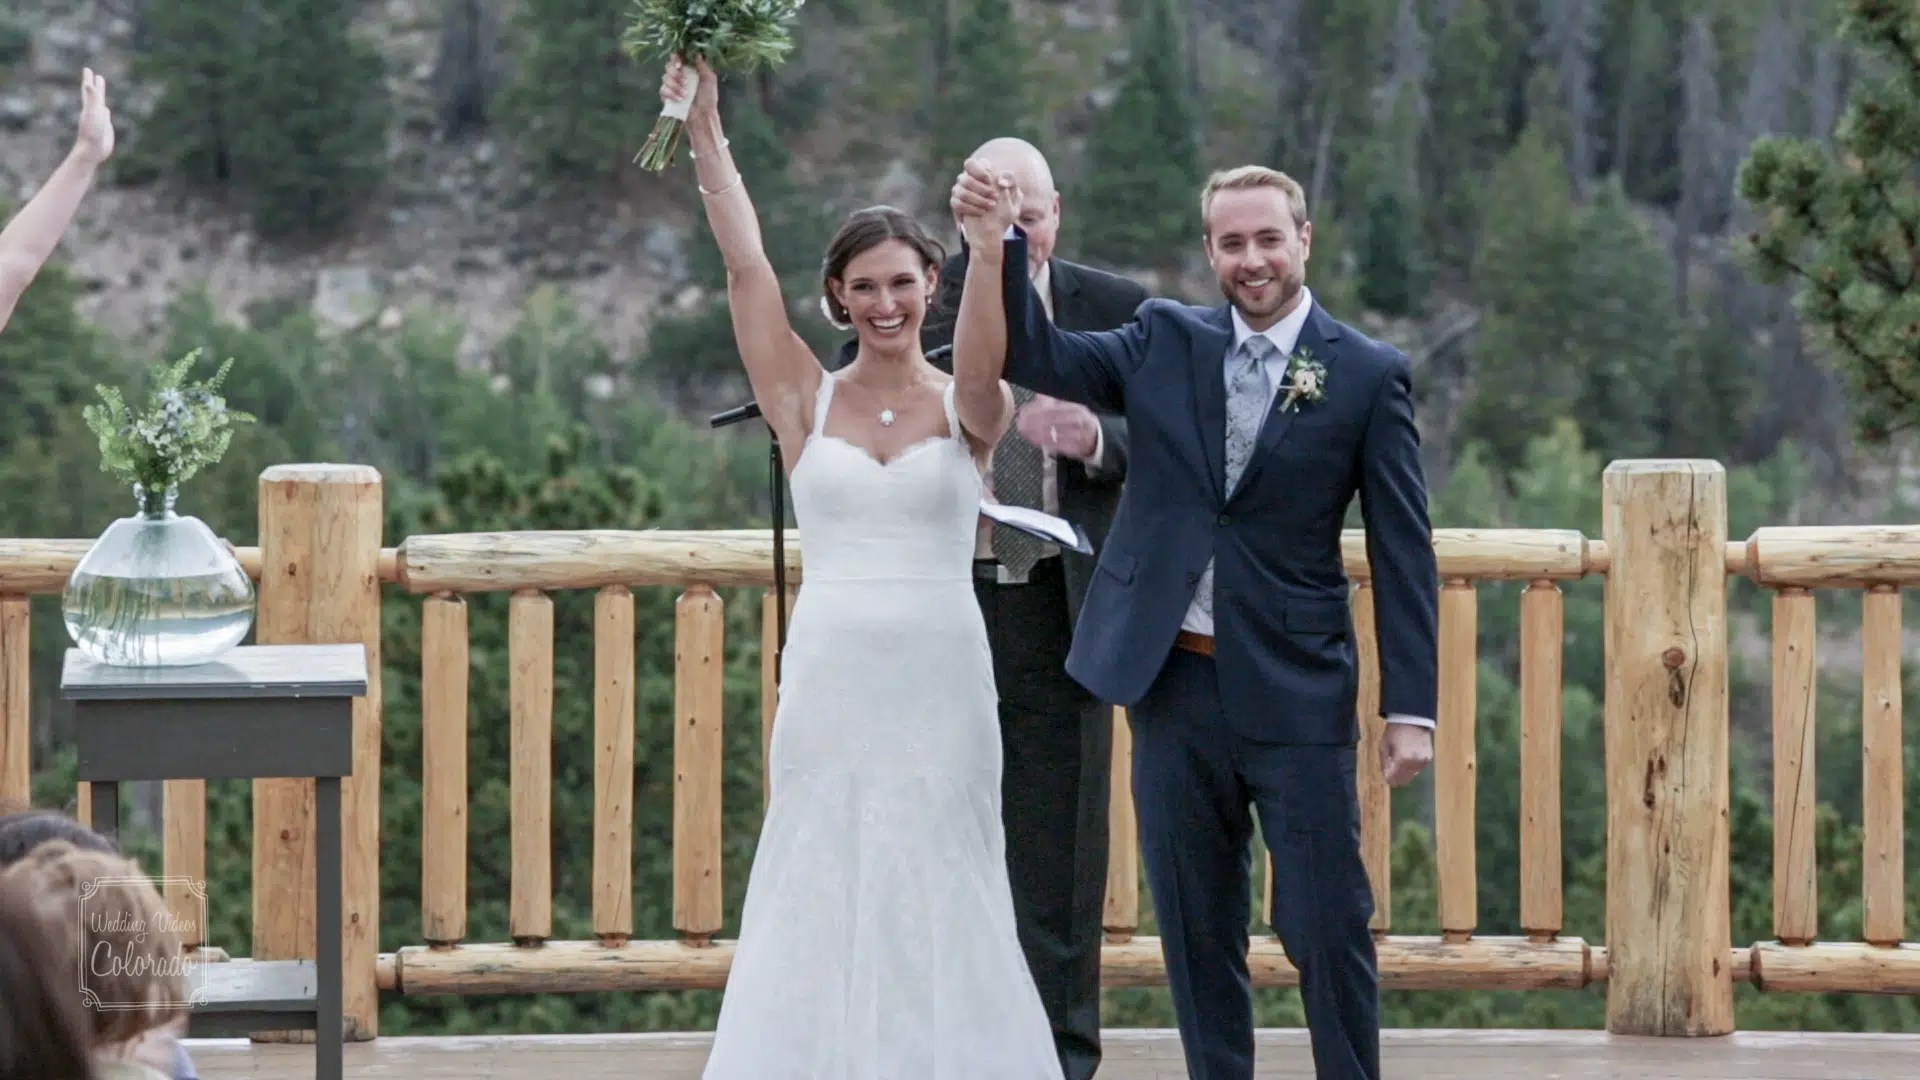 YMCA of the rockies wedding